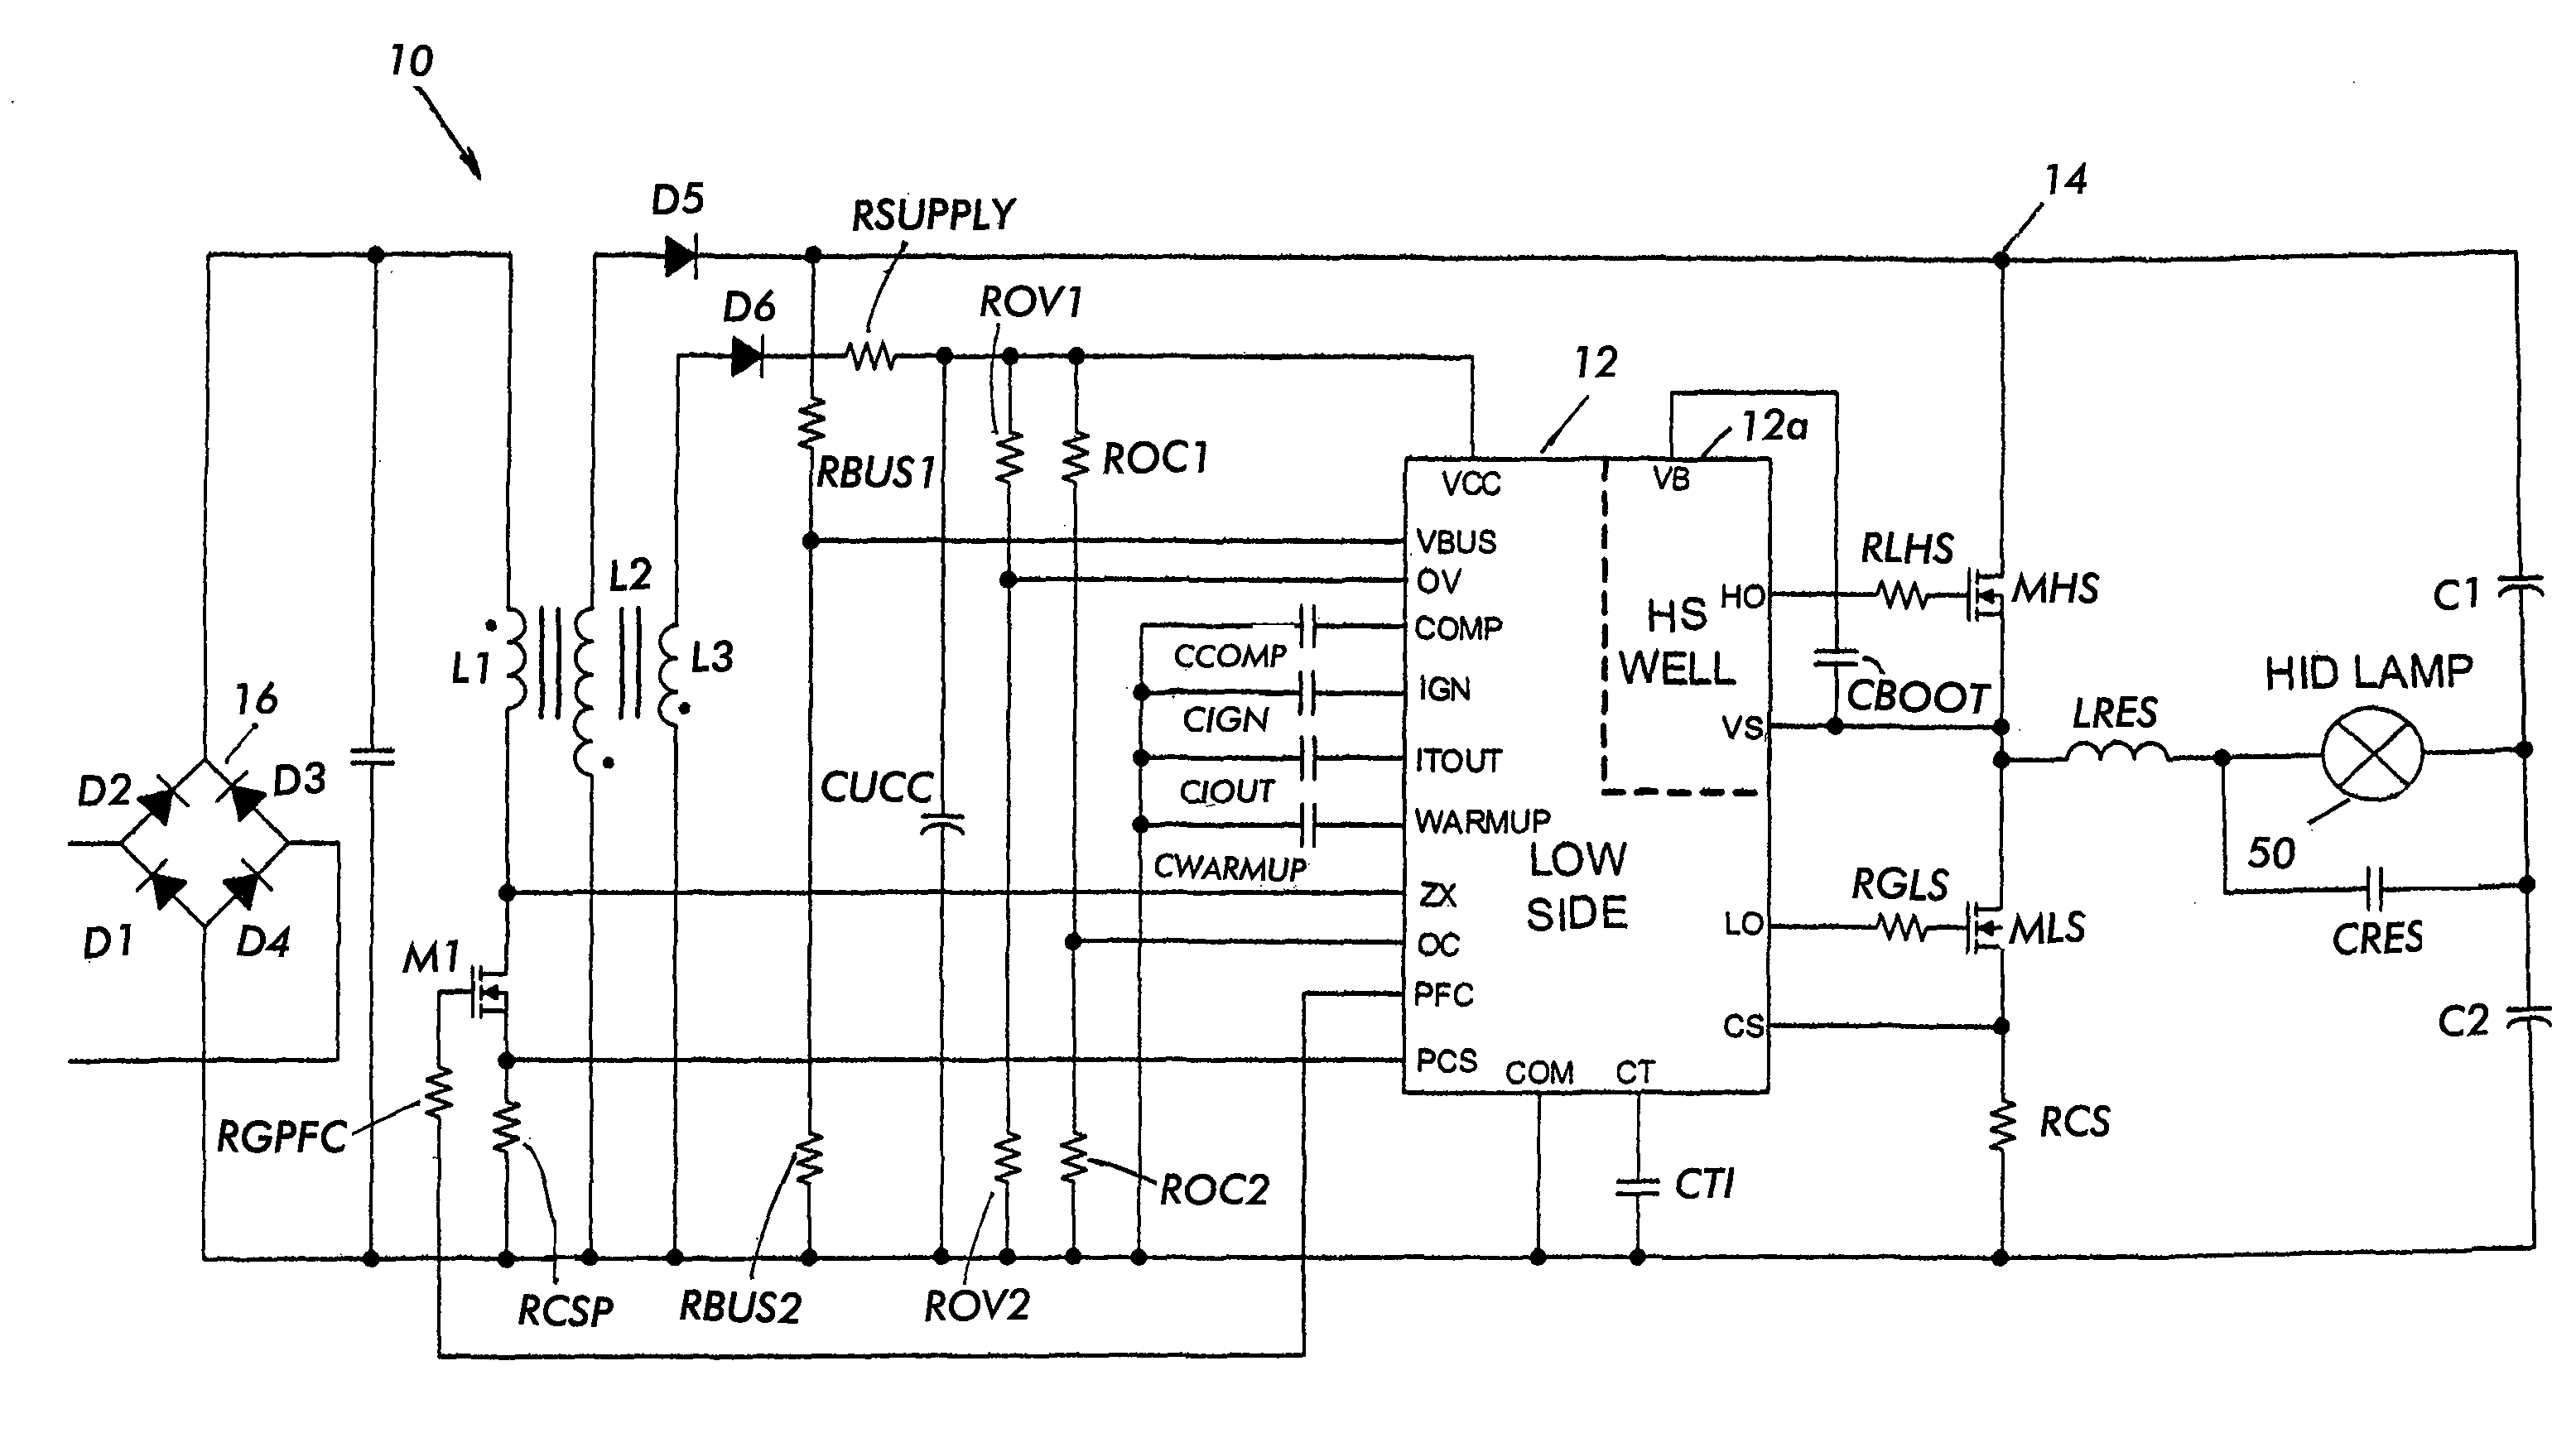 Diagram Seekic Pictures To Pin On Pinterest On 7476 Ic Pin Diagram on ballast control panel, hid ballast diagram, ballast replacement diagram, ballast connection diagrams, electronic ballast circuit diagram, ballast cross reference, fluorescent fixtures t5 circuit diagram, trailer light diagram, ballast resistor purpose, ballast system, ballast tank diagram, ballast ignitor schematic, cnc machine control diagram, ballast regulator, fluorescent light ballast diagram, ballast wire, engine cooling system diagram, ballast installation, a c system diagram,